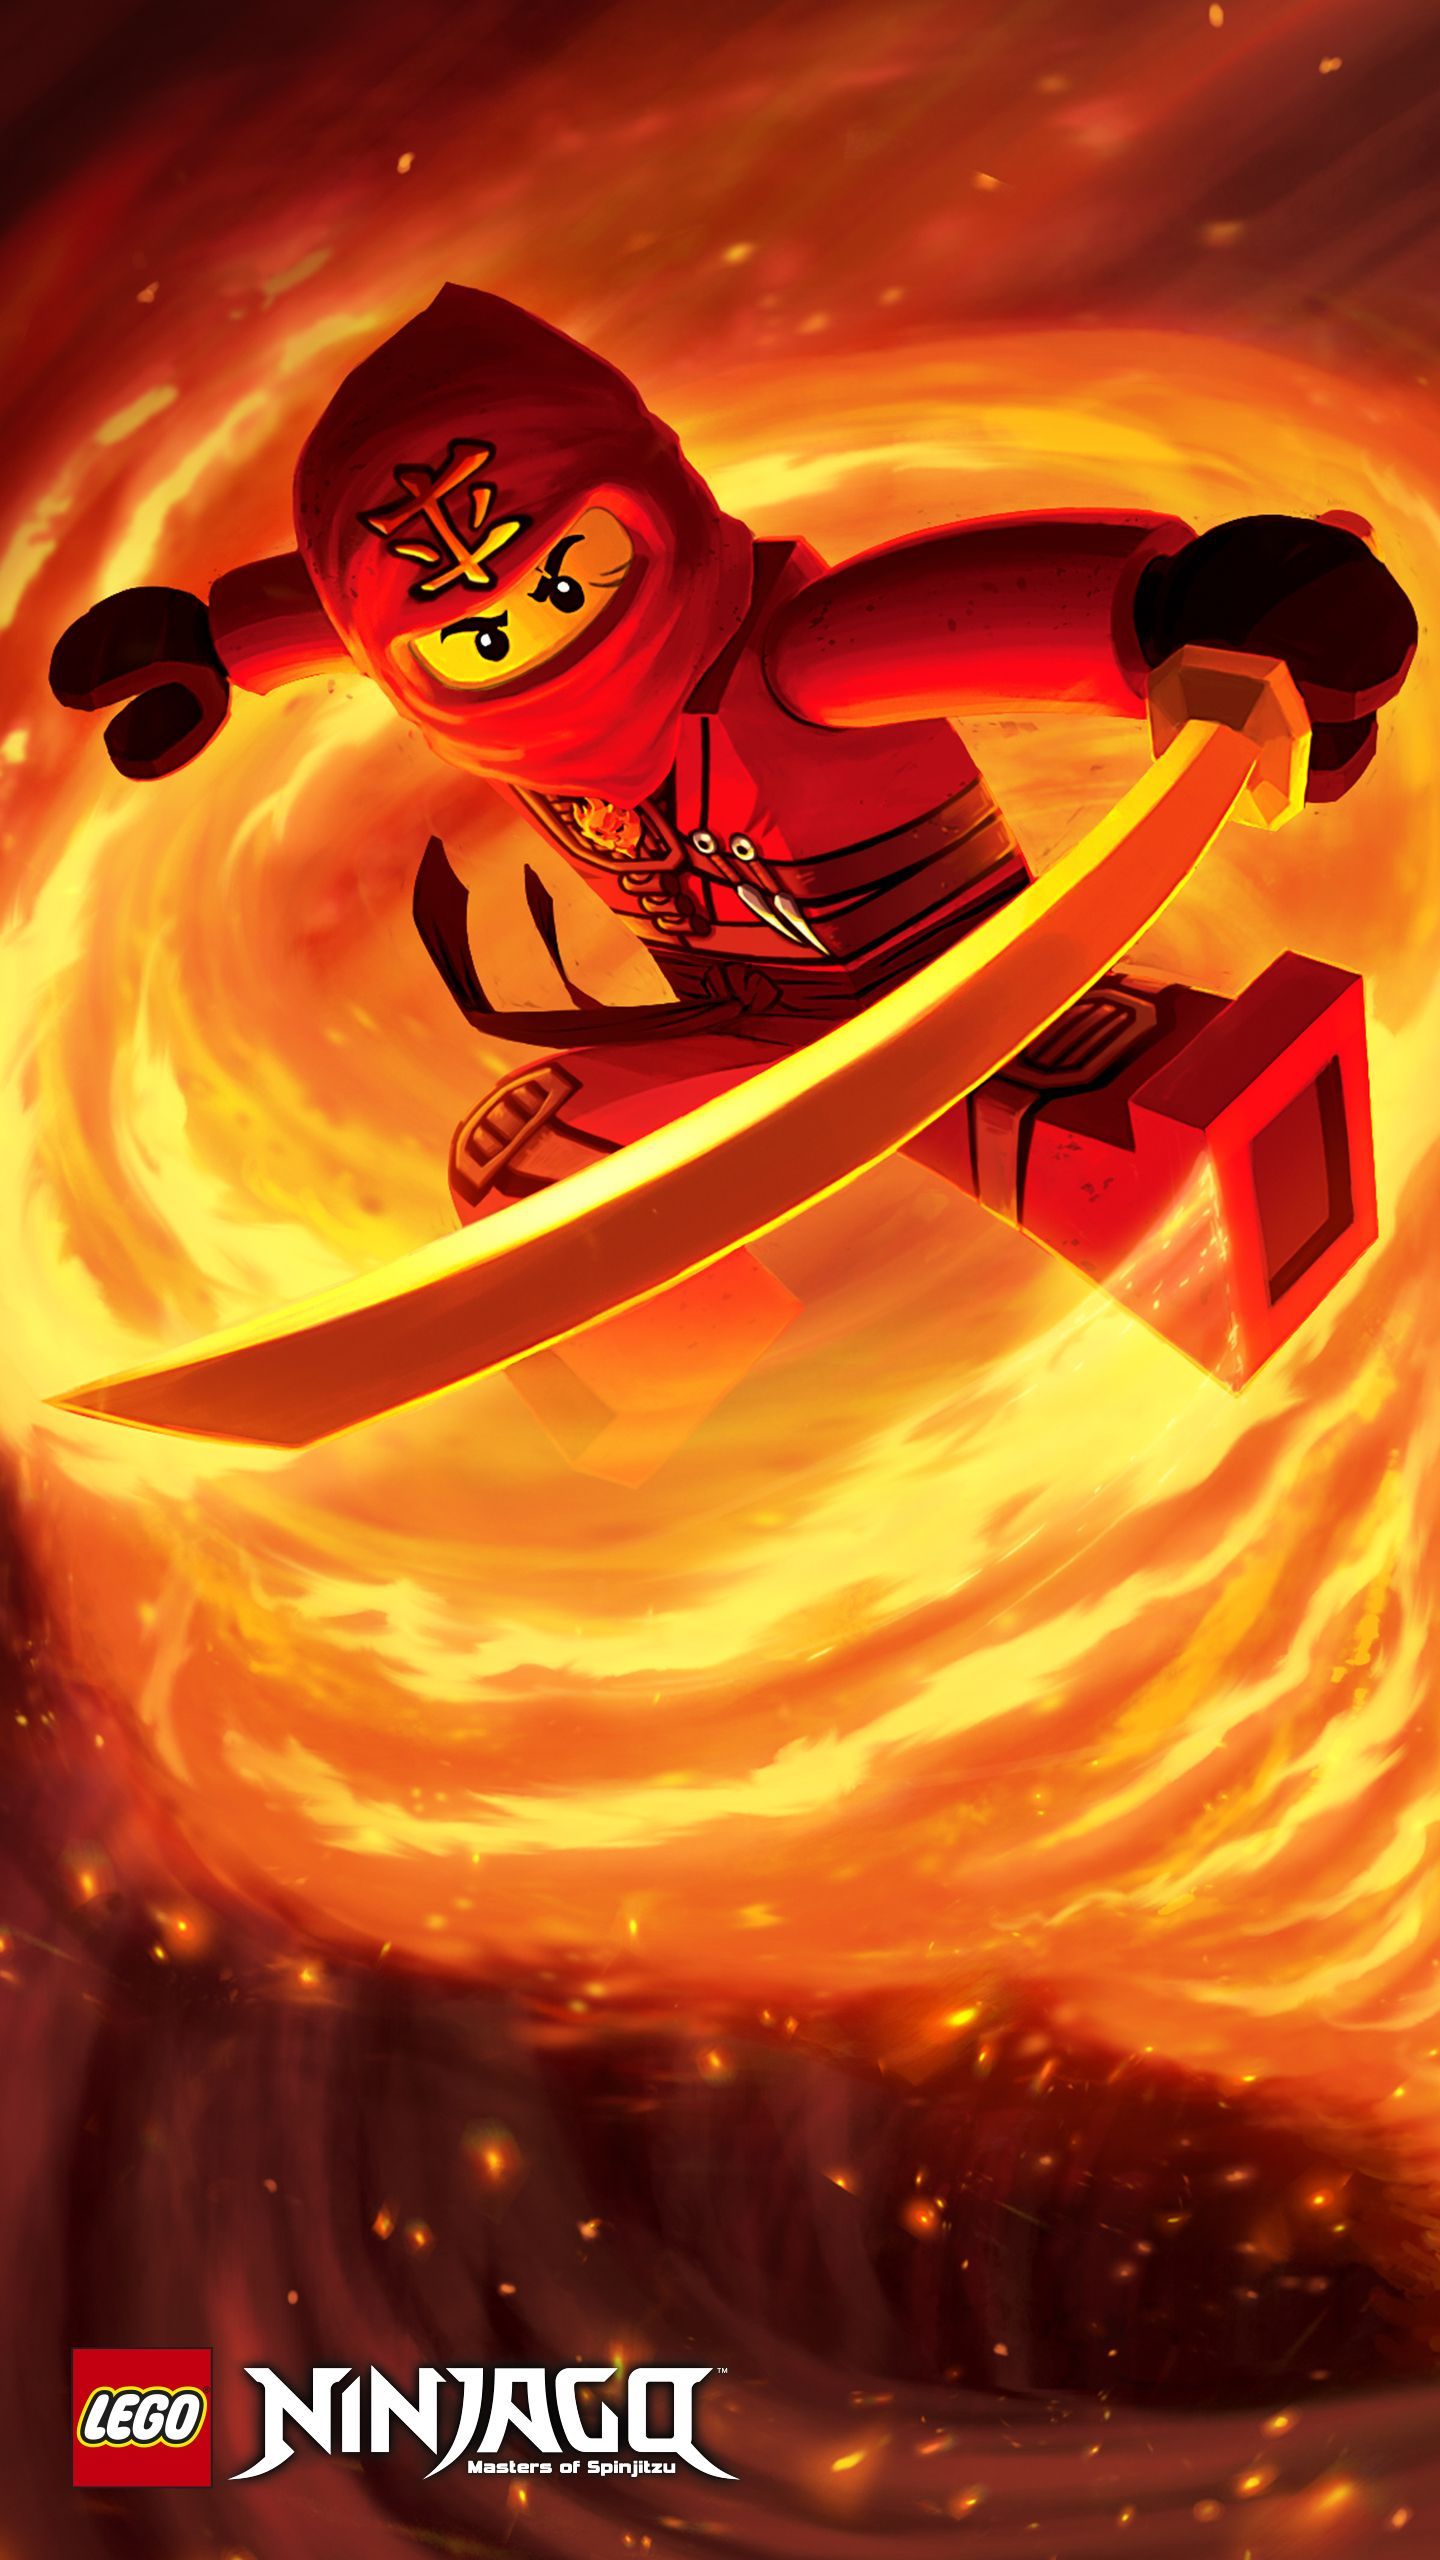 1440x2560 Kai Poster - Tournament of Elements - Wallpapers - LEGO® NINJAGO ...